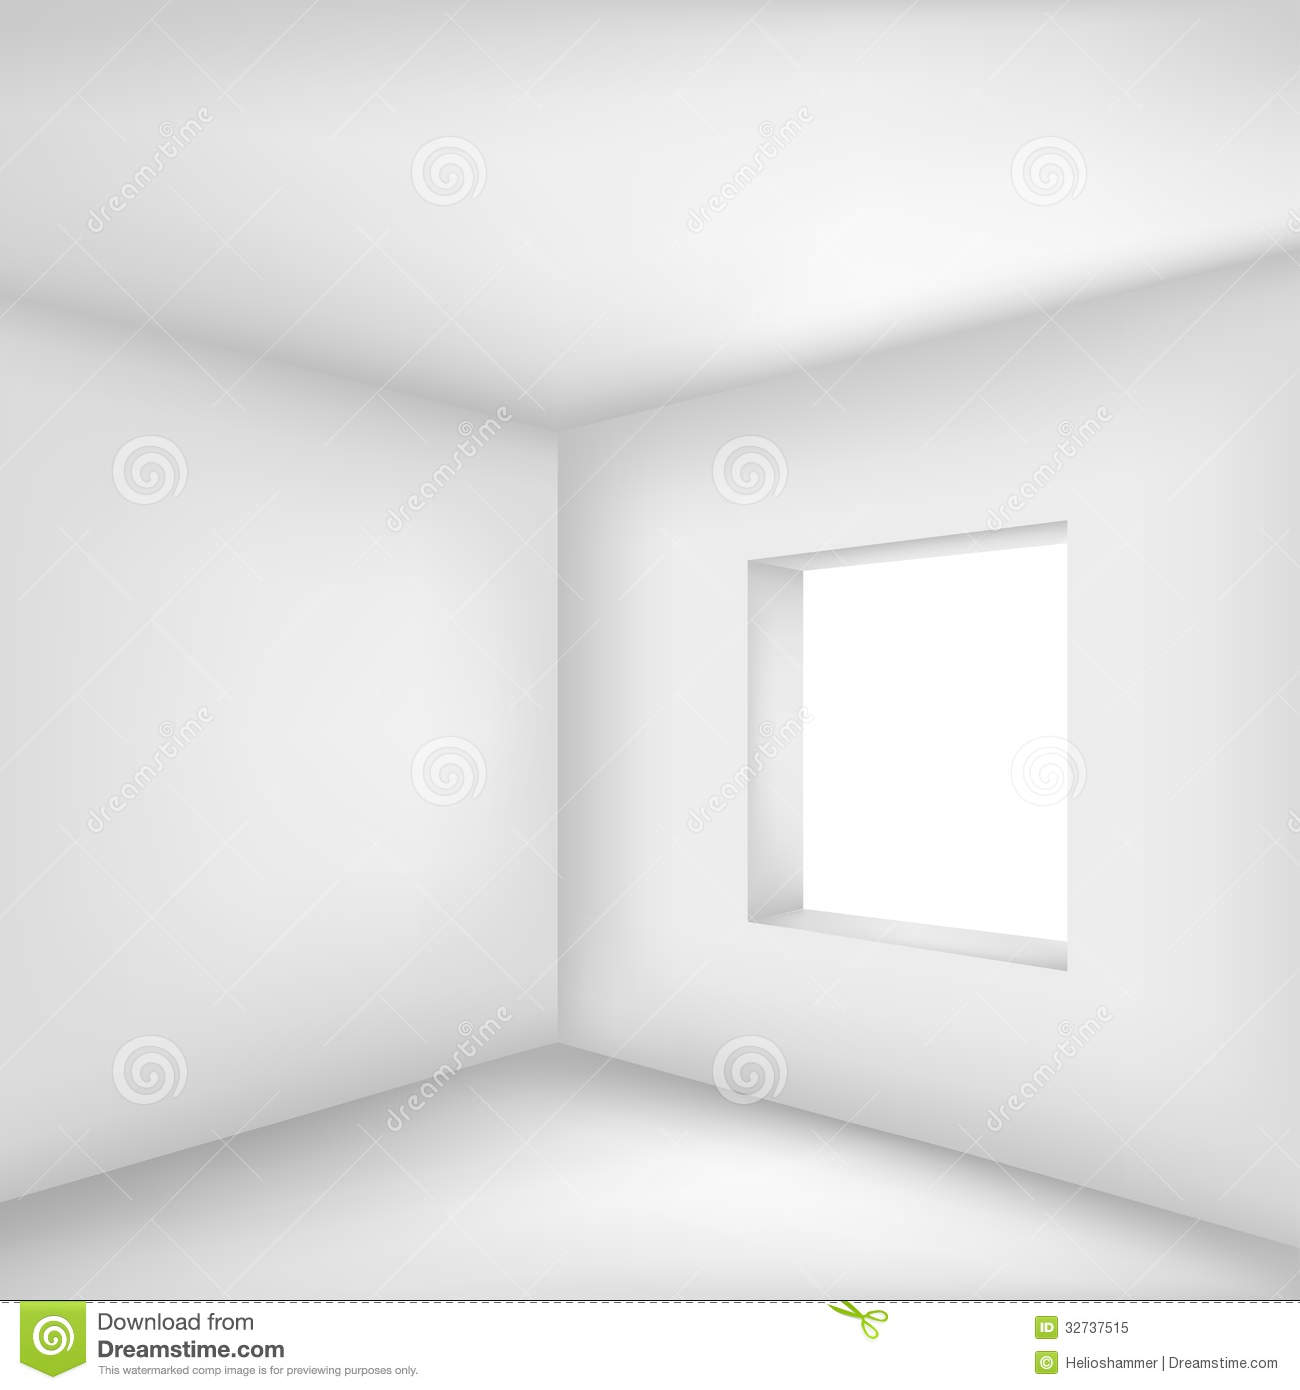 Empty office room with window - Empty White Room Royalty Free Stock Photo Image 32737515